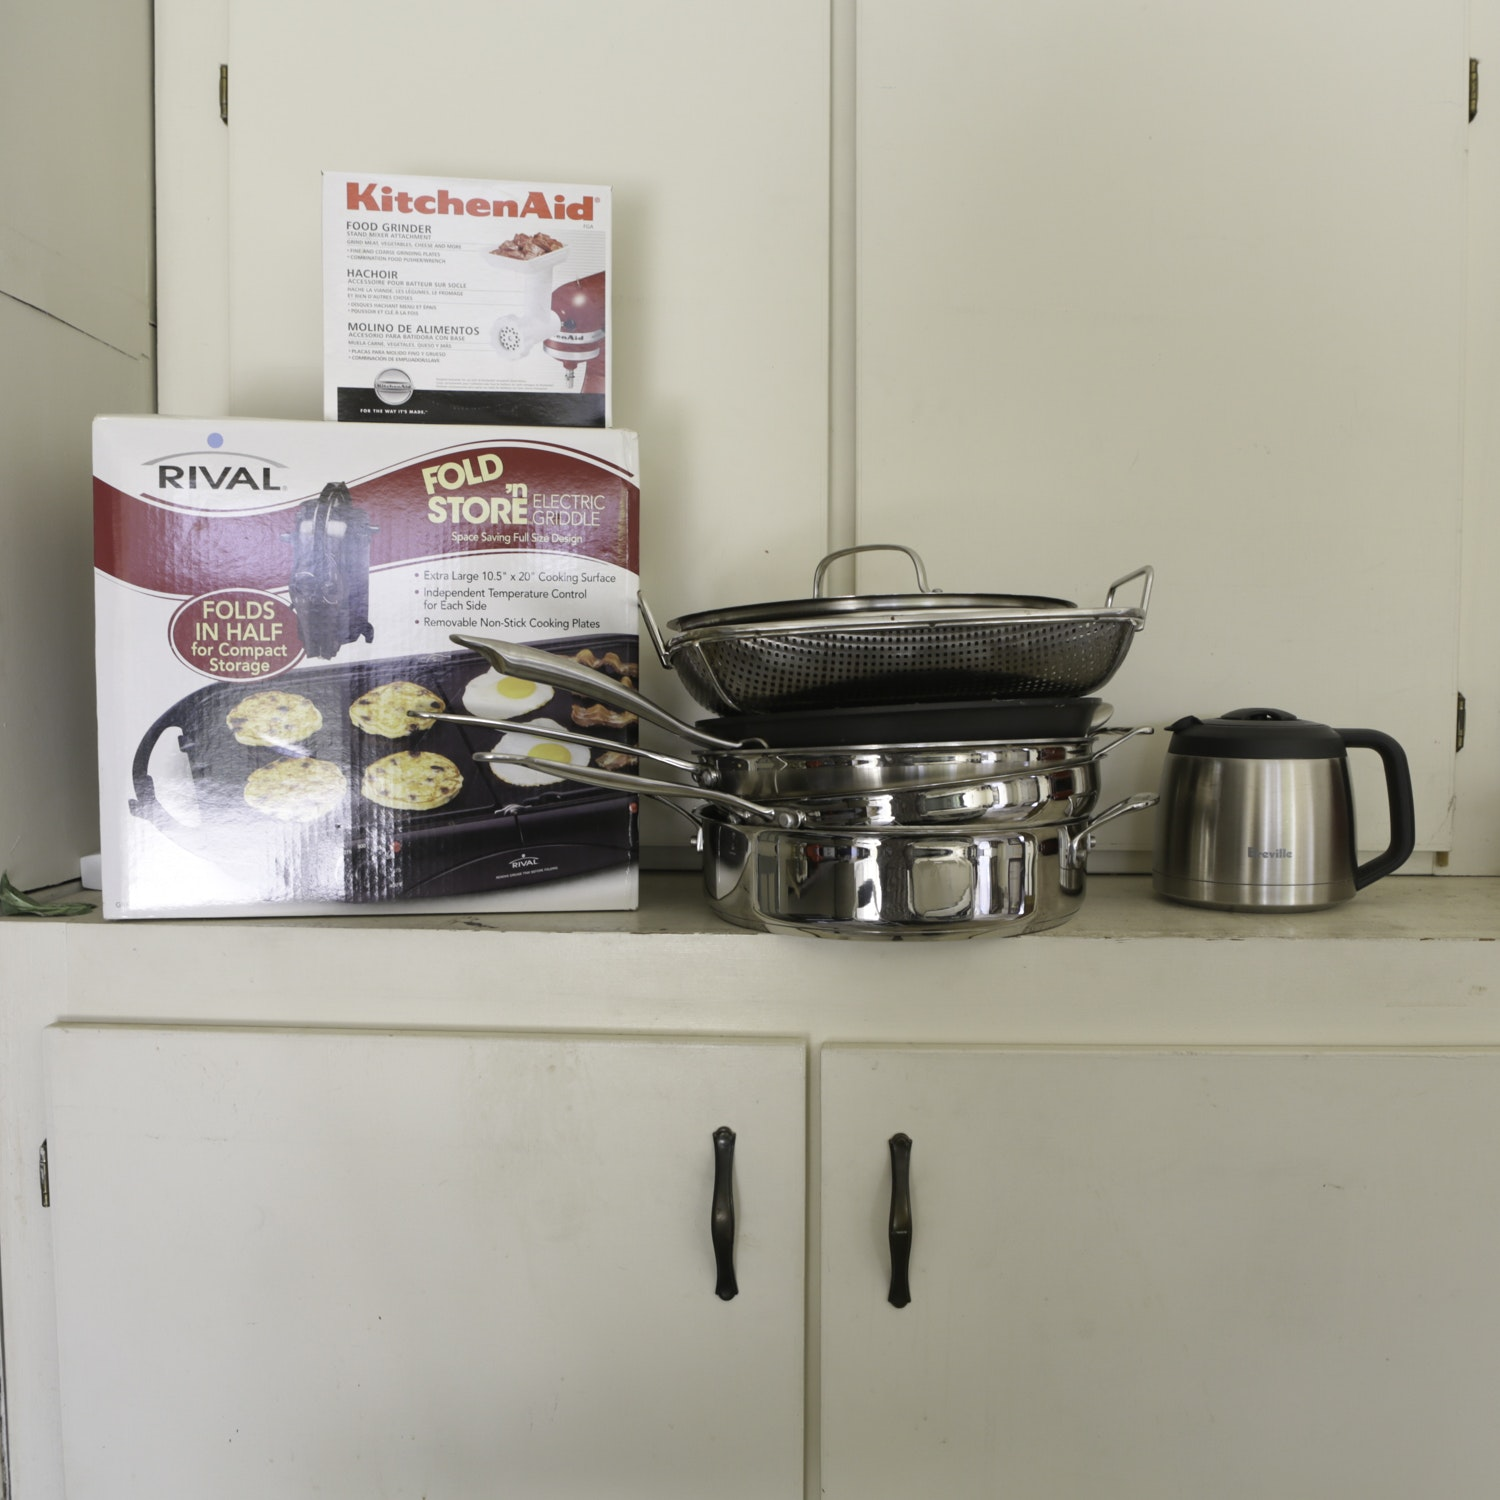 Incroyable Cookware, Electric Griddle, KitchenAid Food Grinder And Kitchen Accessories  ...